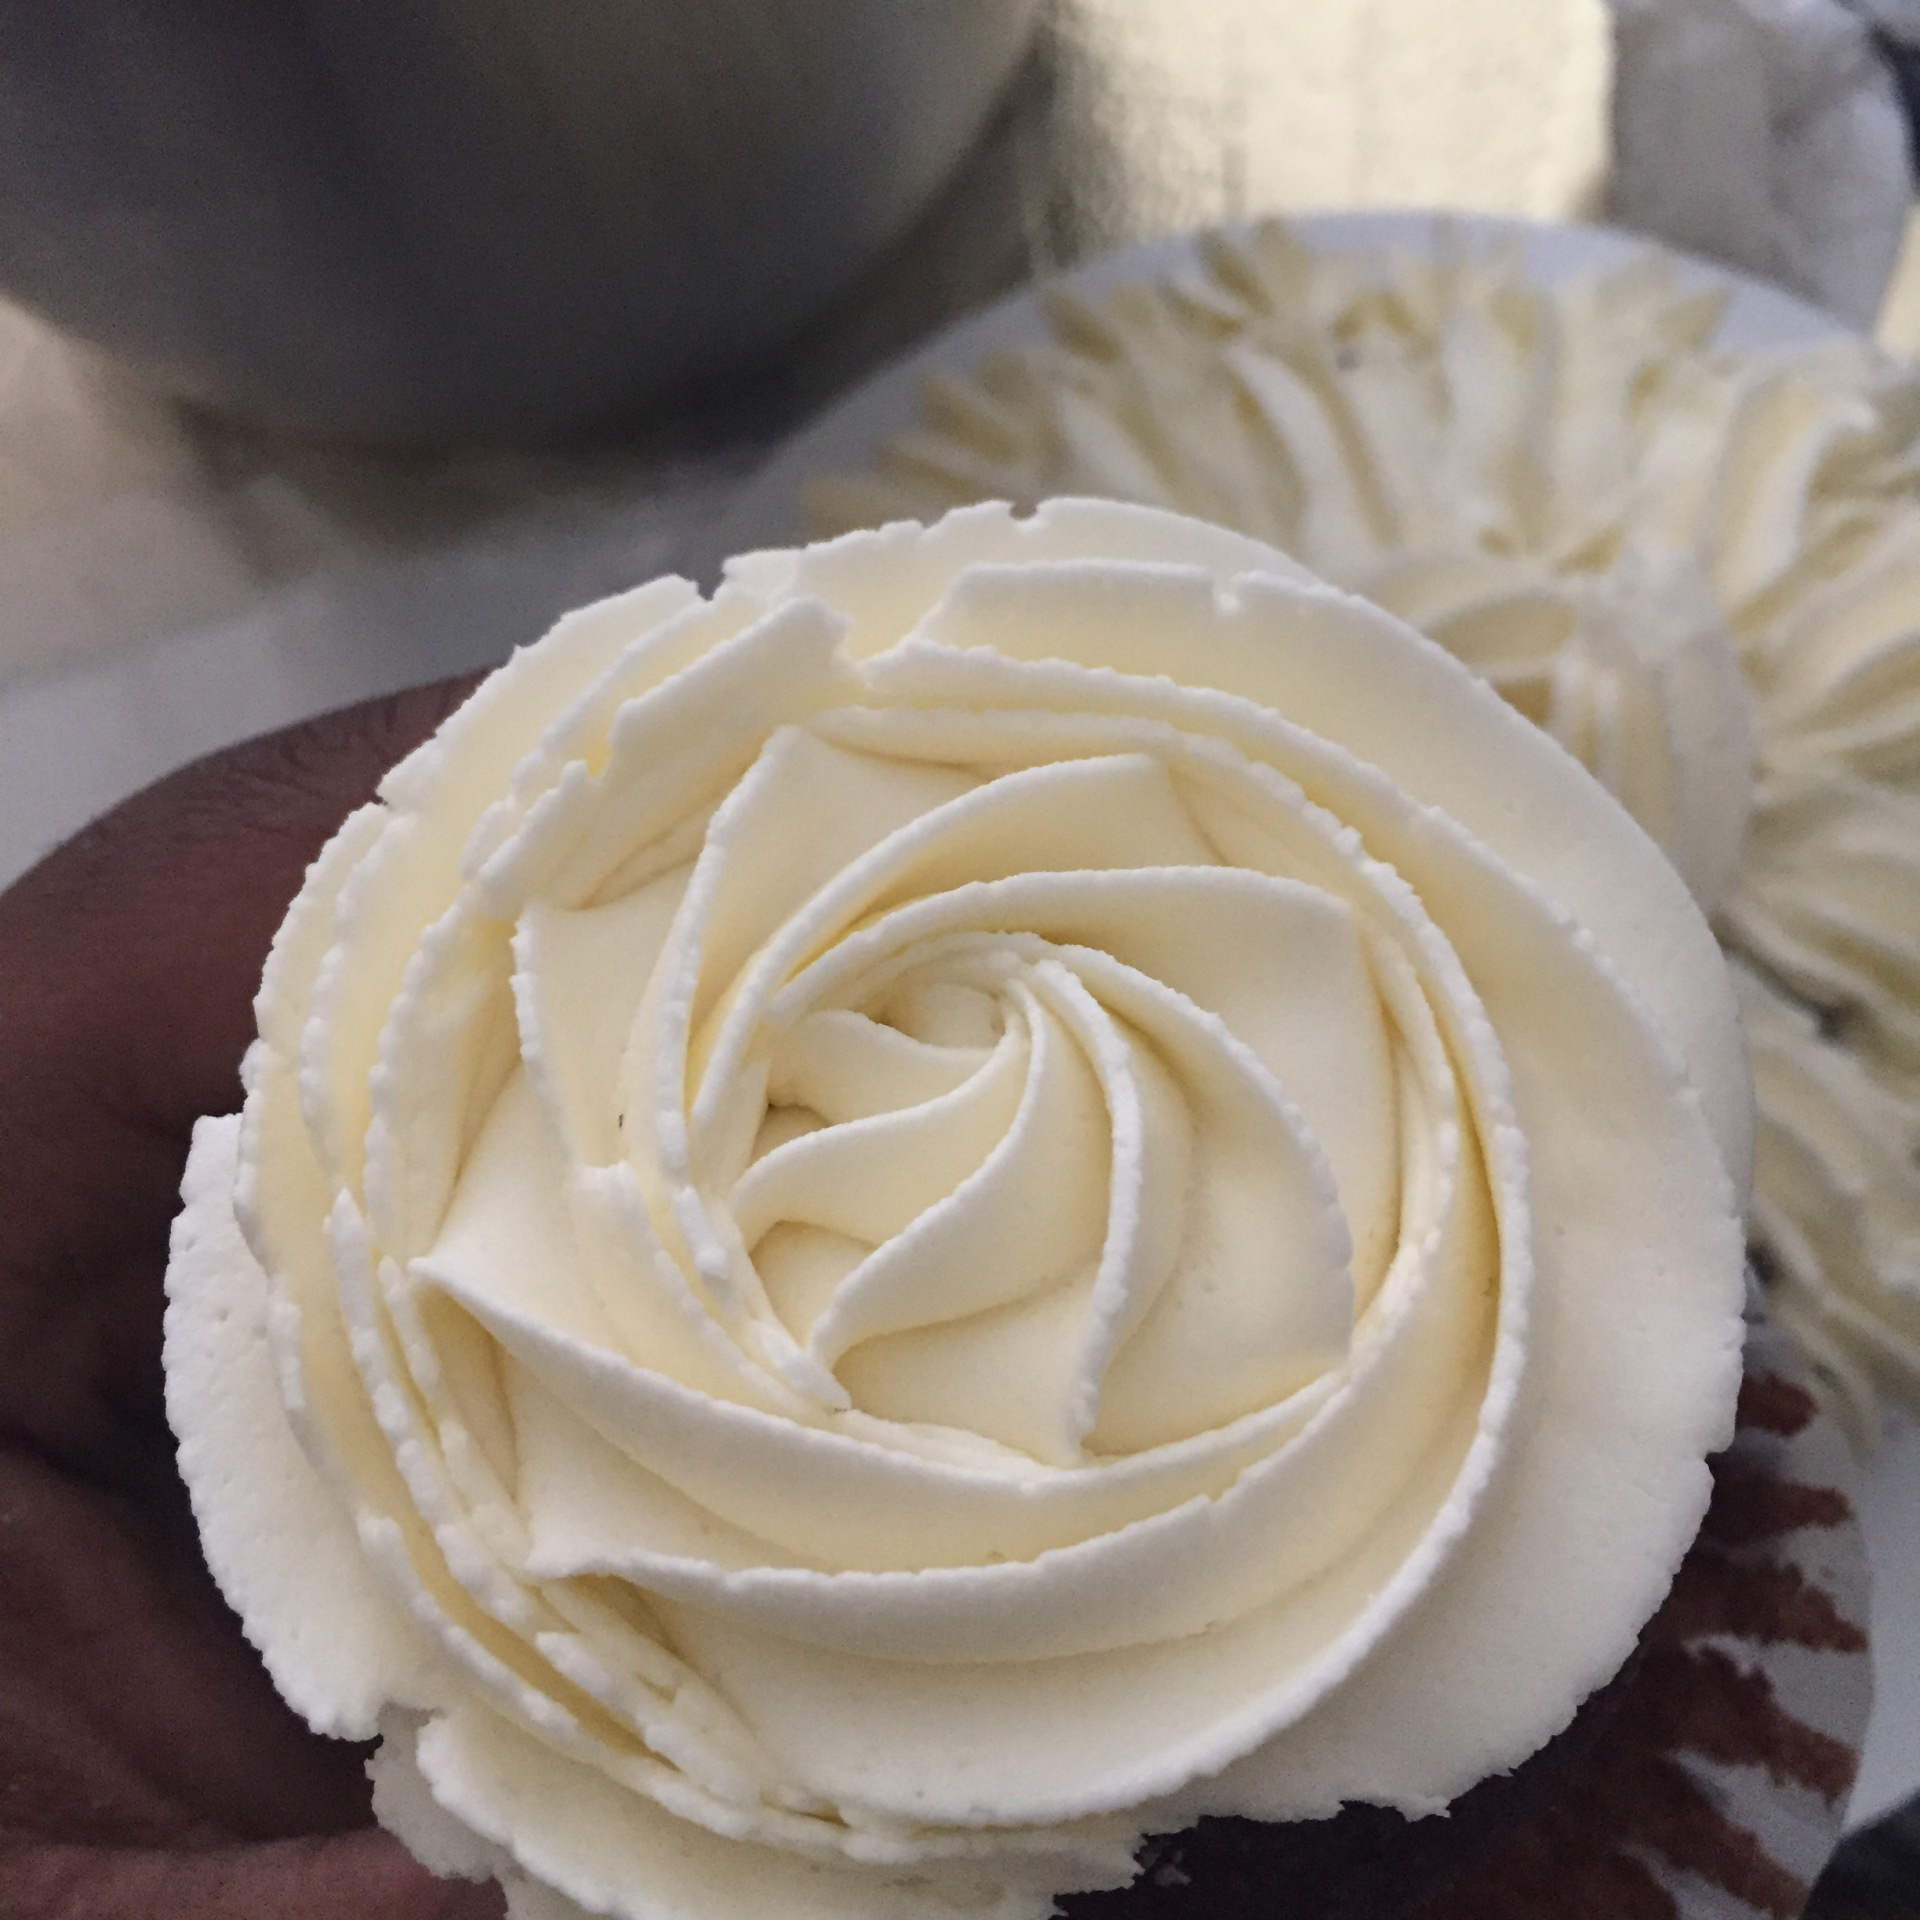 Chocolate w/ Vanilla Frosting